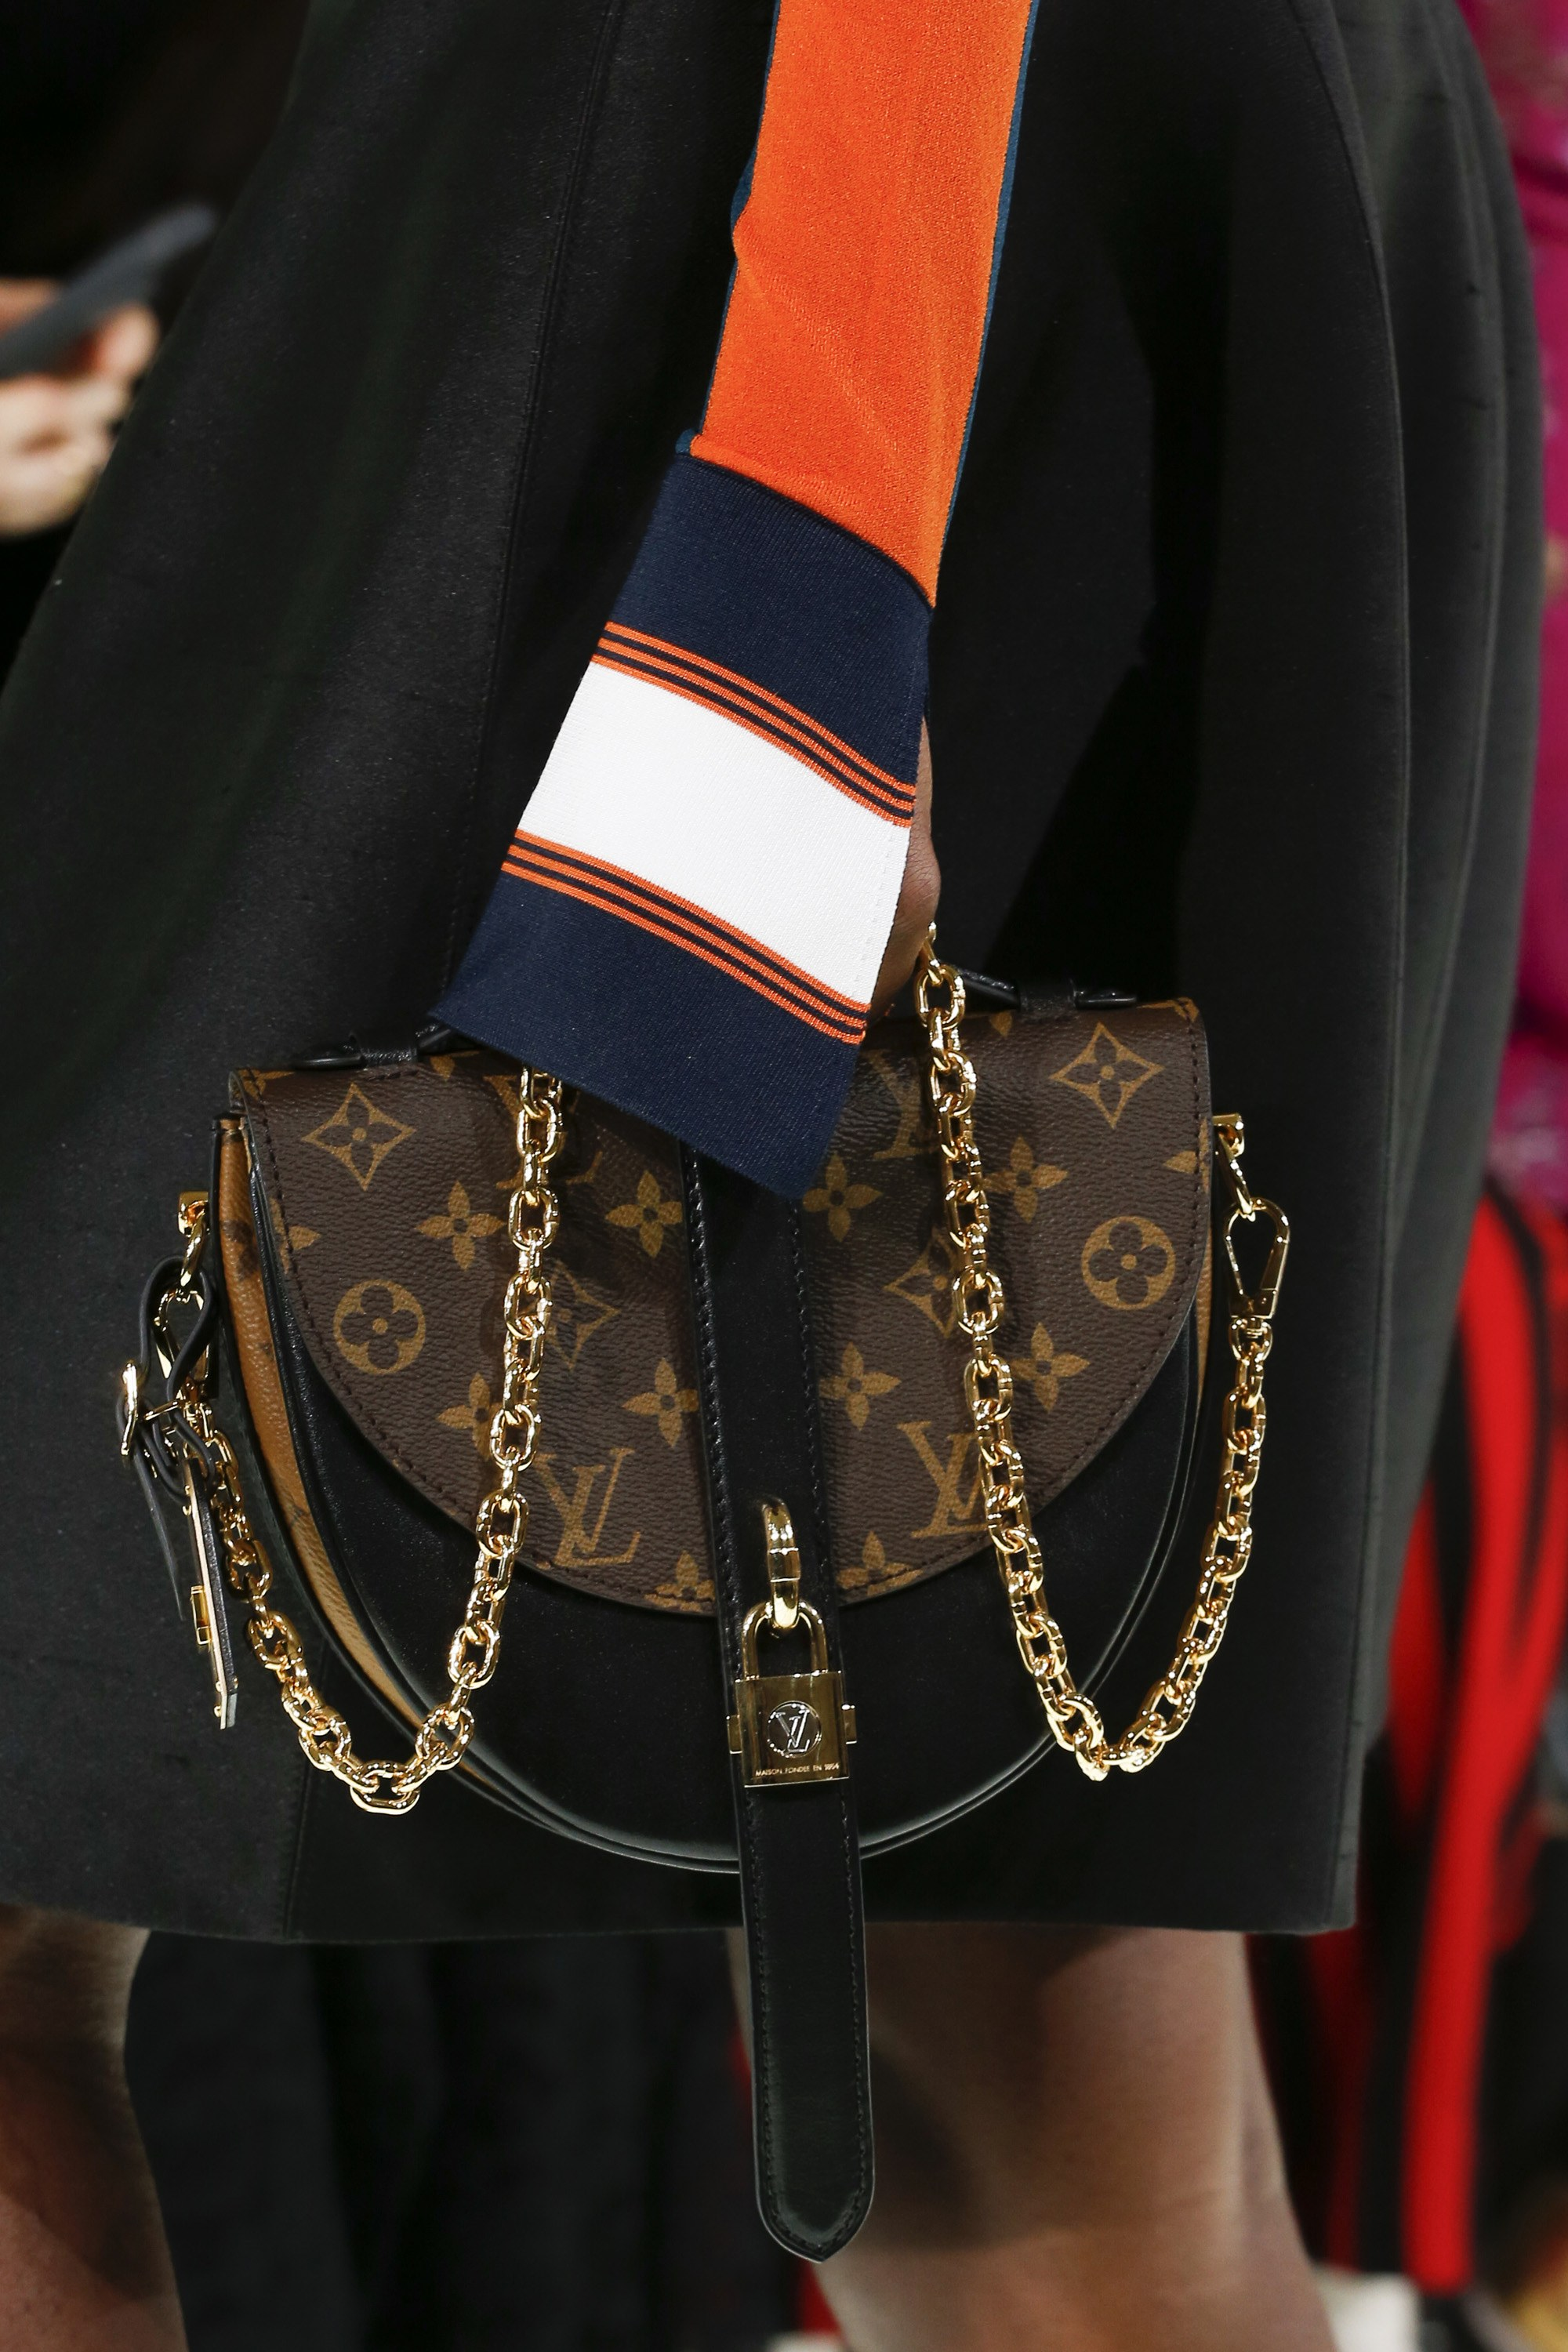 The Louis Vuitton New Chain Bags Makes A Chic Return